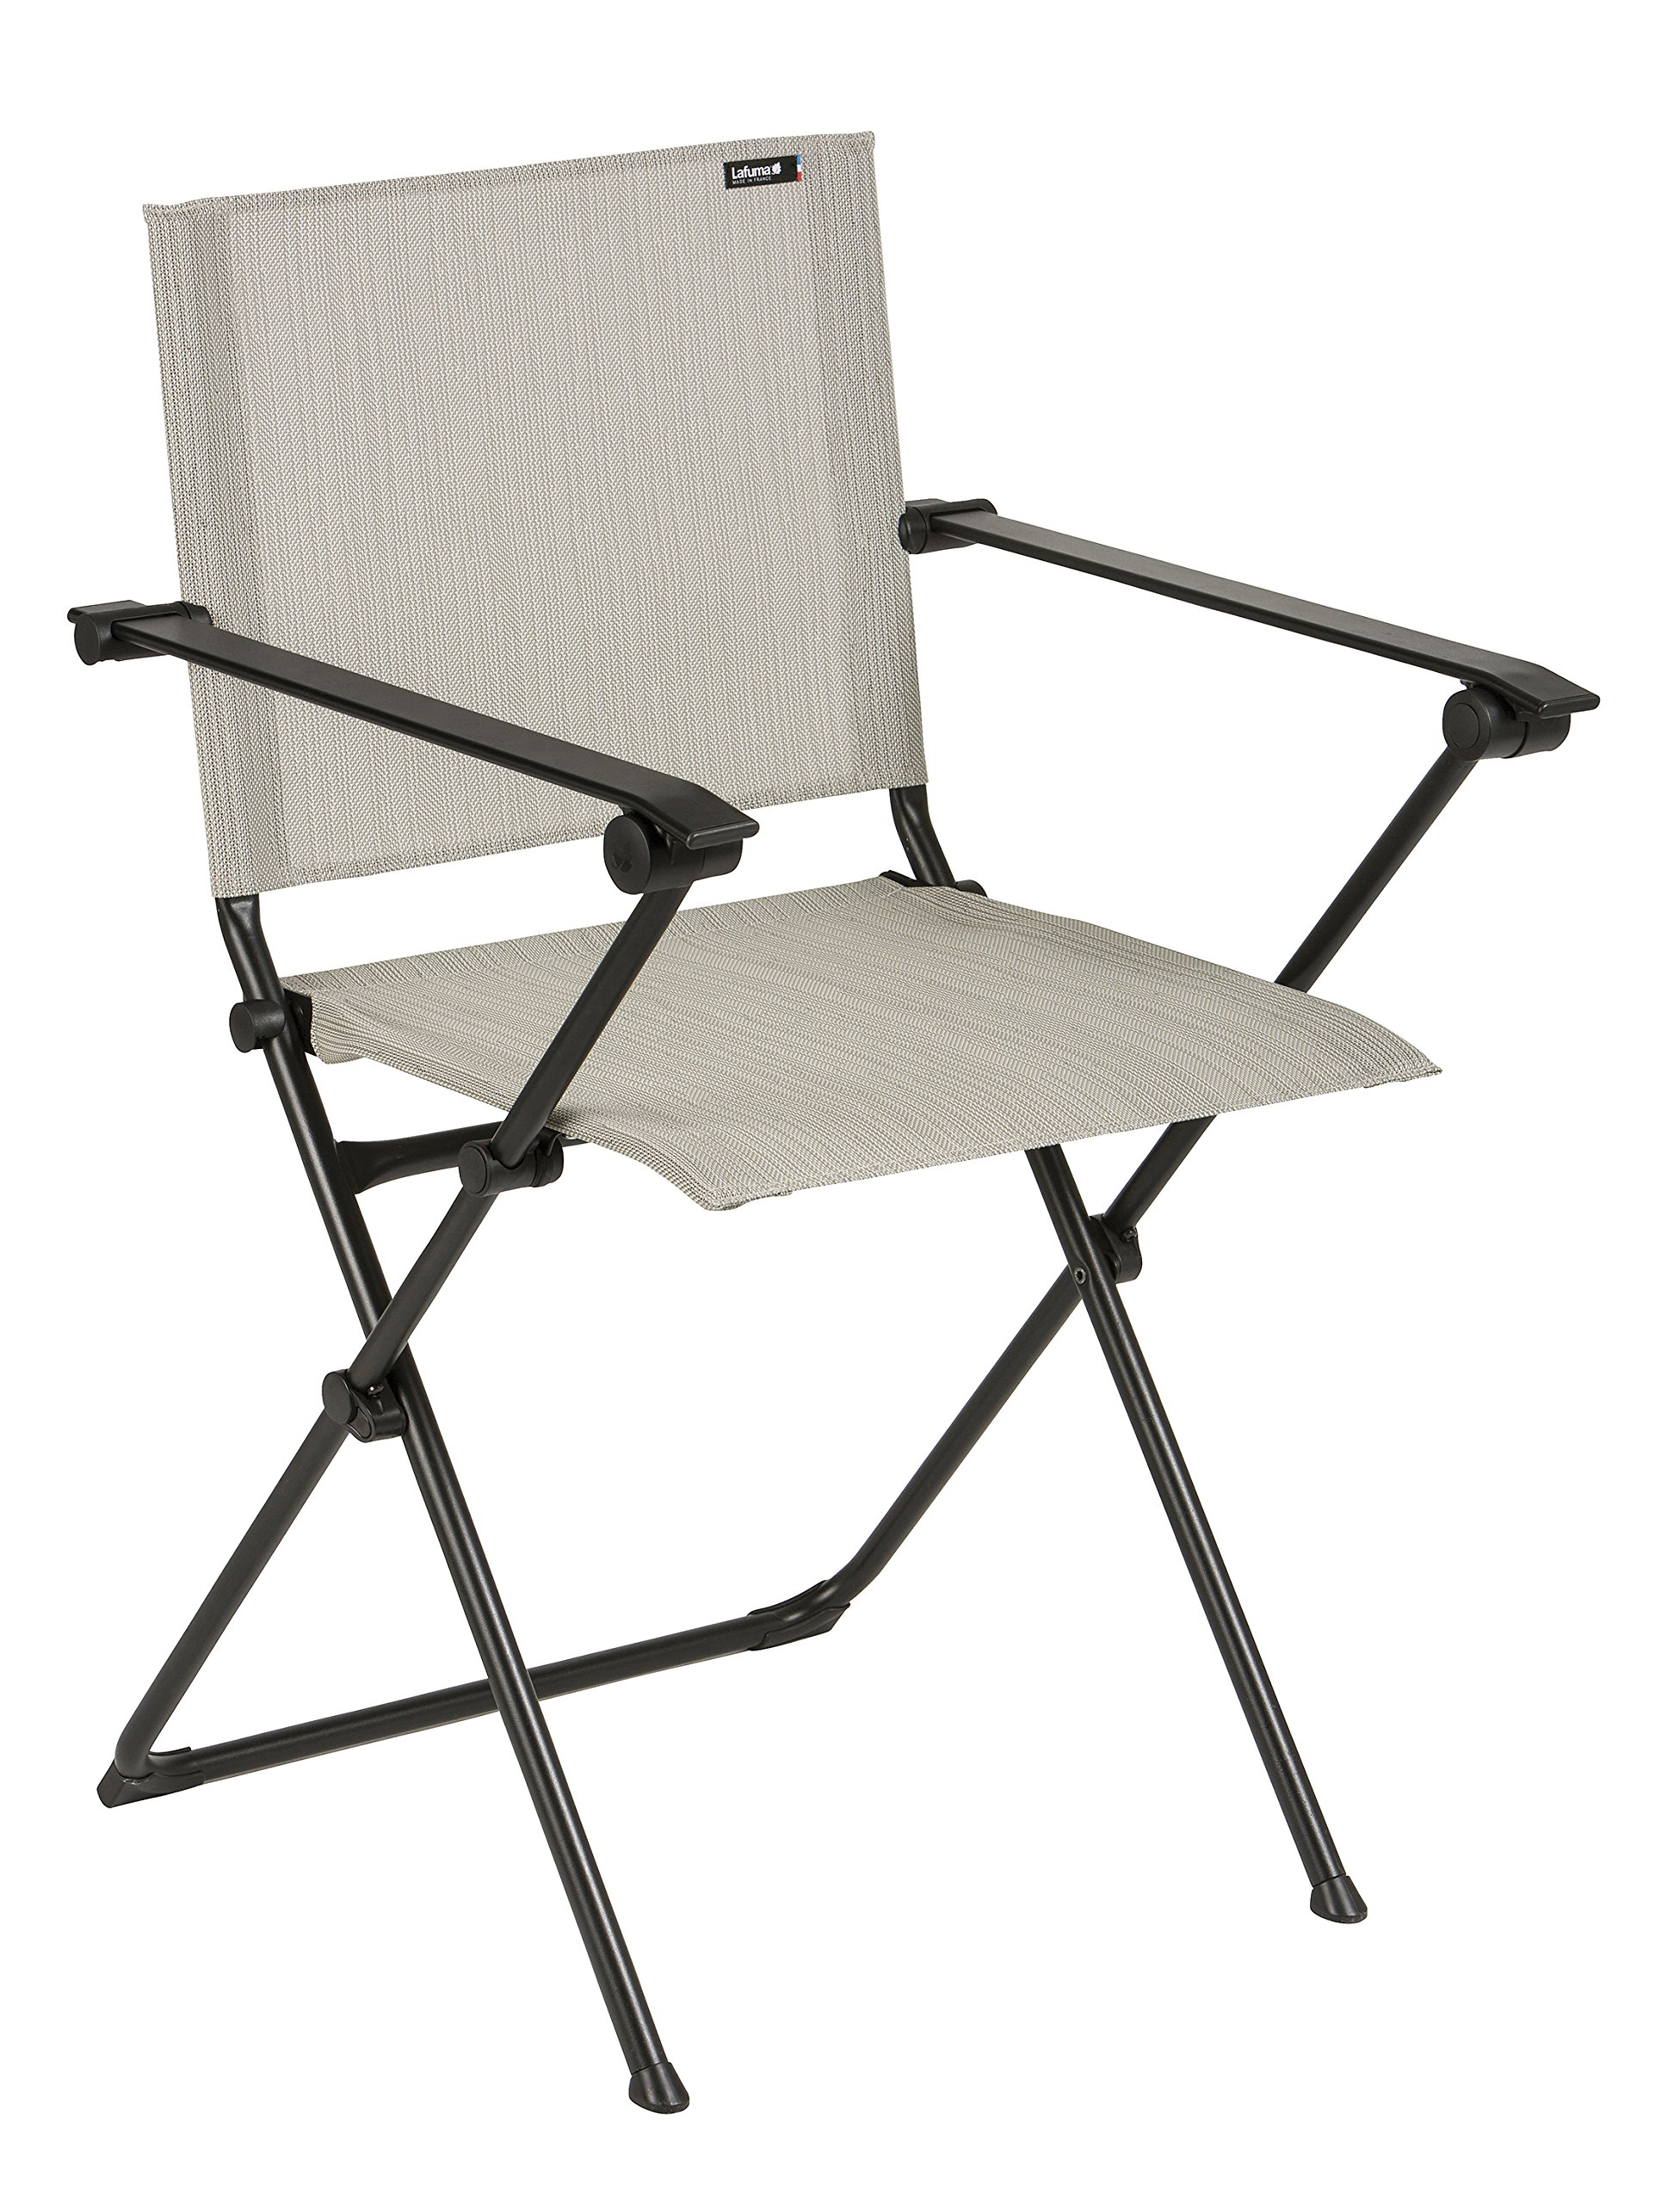 Lafuma Anytime Folding Armchair - Black Steel Frame with Galet Batyline Duo Fabric